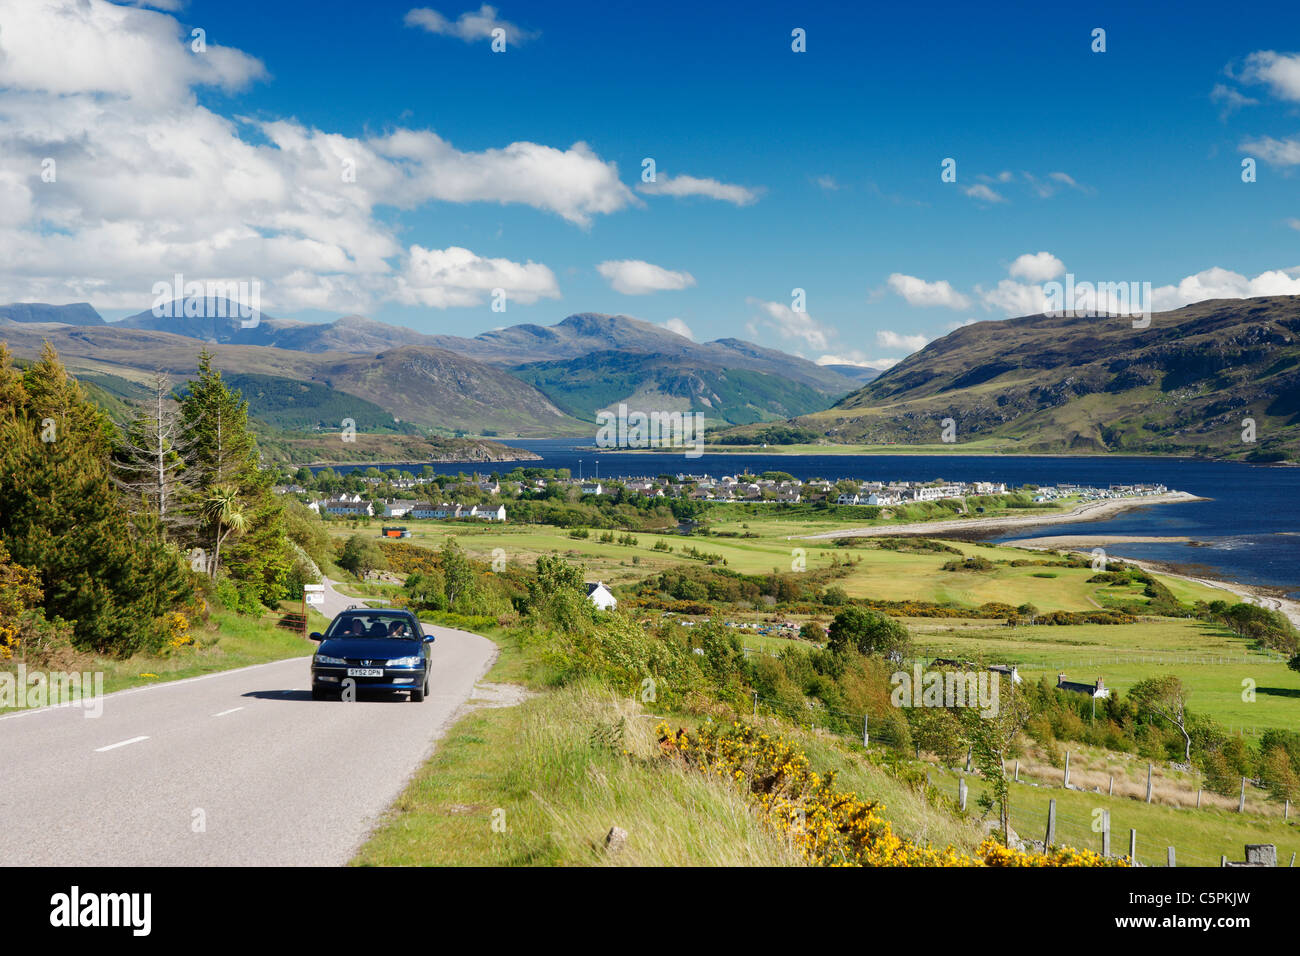 Car on the the A835 main road with view over Ullapool and Loch Broom, Ross and Cromarty, Highland, Scotland, UK - Stock Image